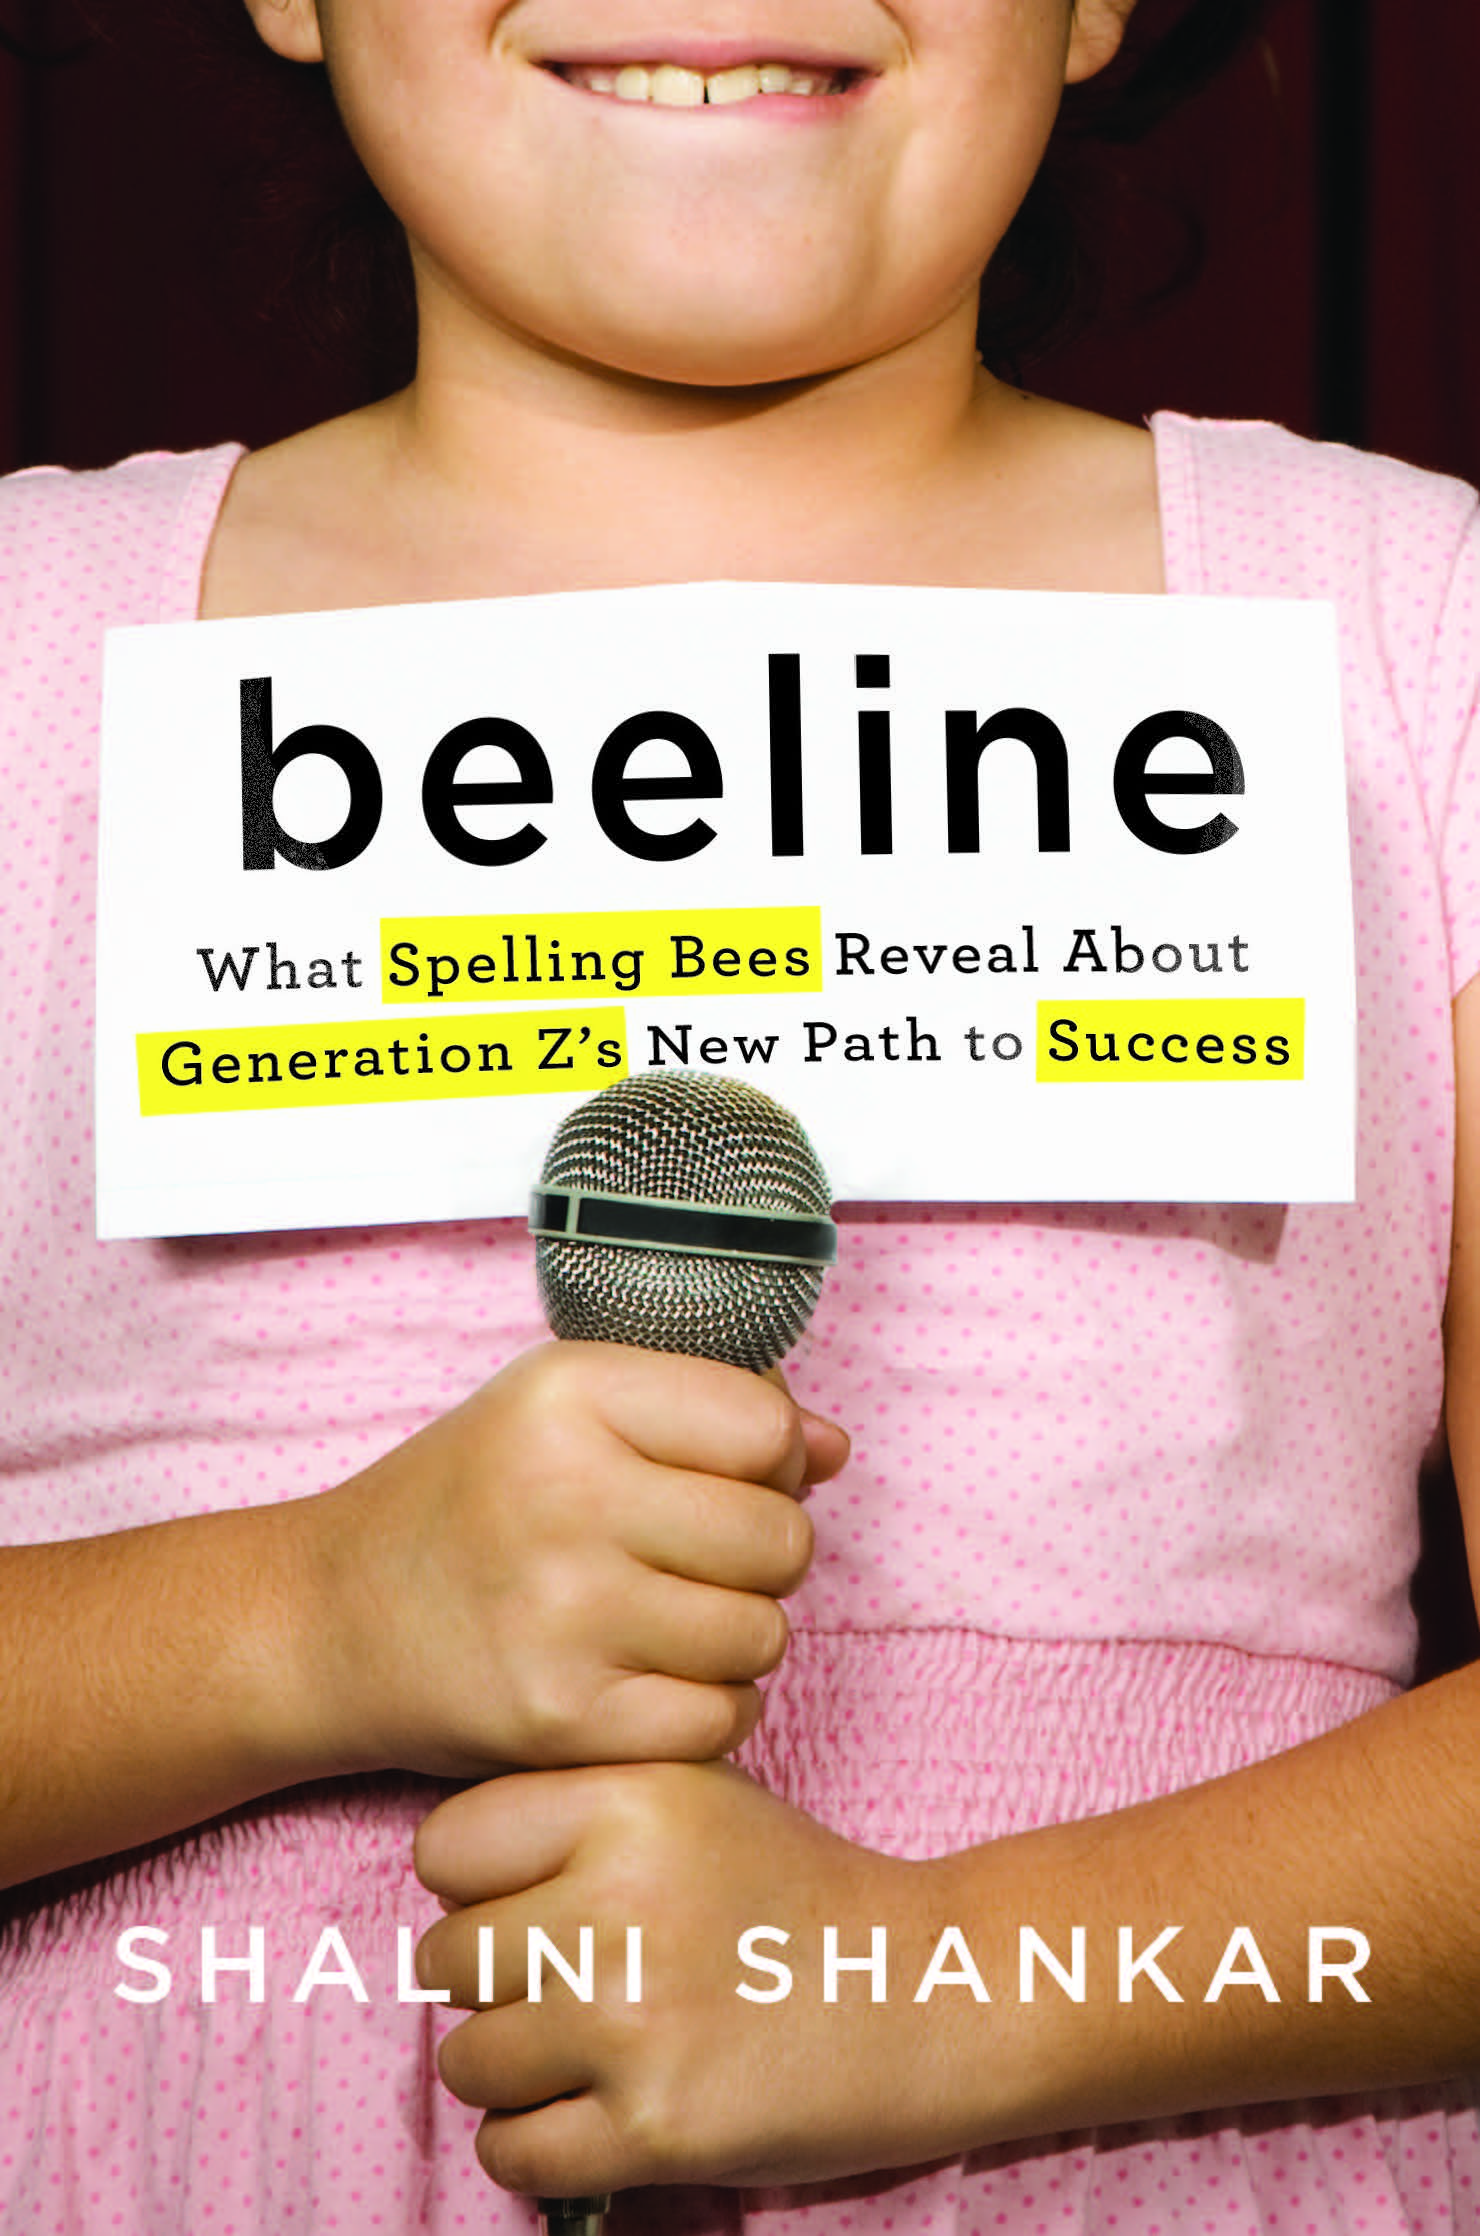 Beeline: What Spelling Bees Reveal about Generation Z's New Path to Success (Basic Books, 2019)